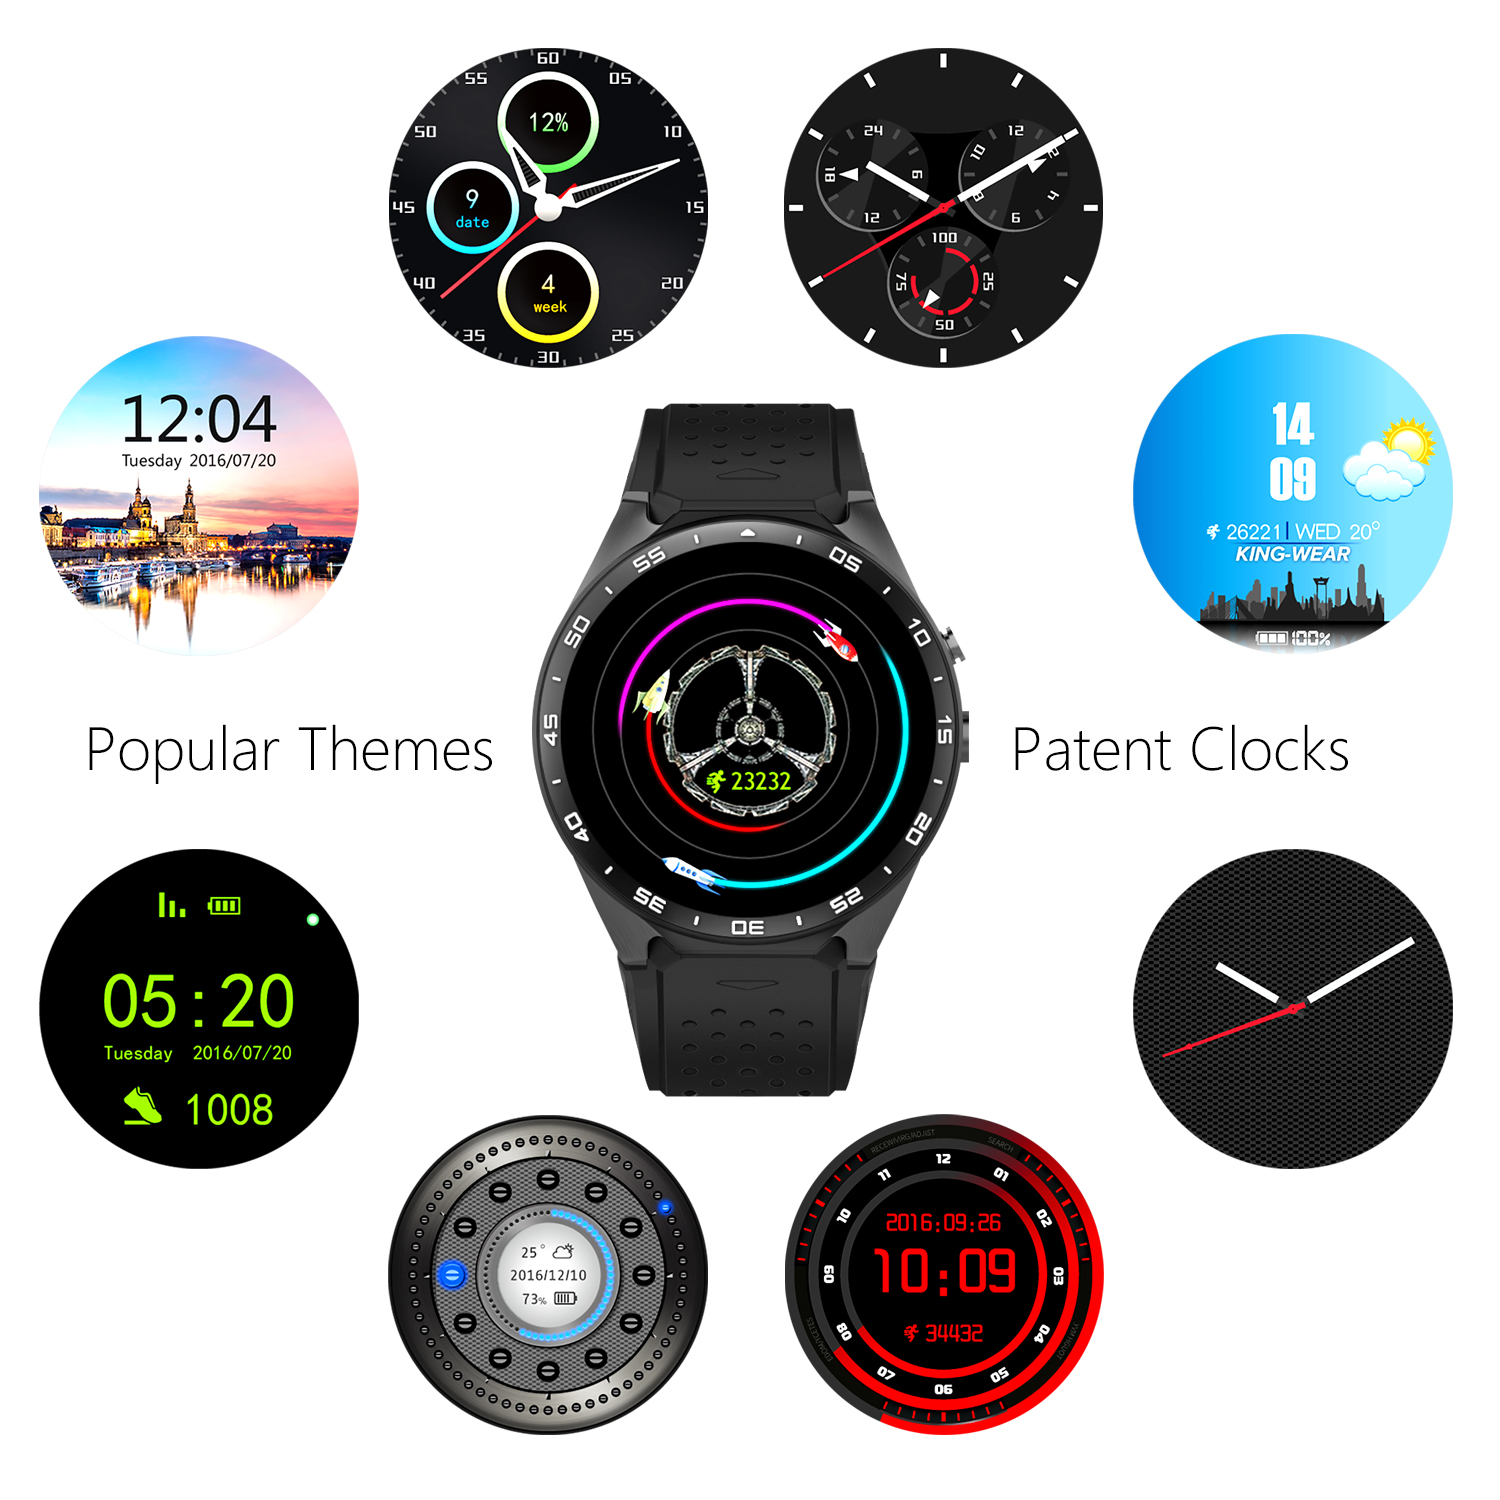 Best Kw88 android 5.1 OS Smart Watch 1.39-inch screen mtk6580 SmartWatch phone supports Bluetooth 3G wifi nano SIM for Apple Hua slimy x200 android 5 1 smart watch phone with bluetooth 3g wifi gps nano sim card mtk6580 512mb 8gb smartwatch pk kw88 z10 les1